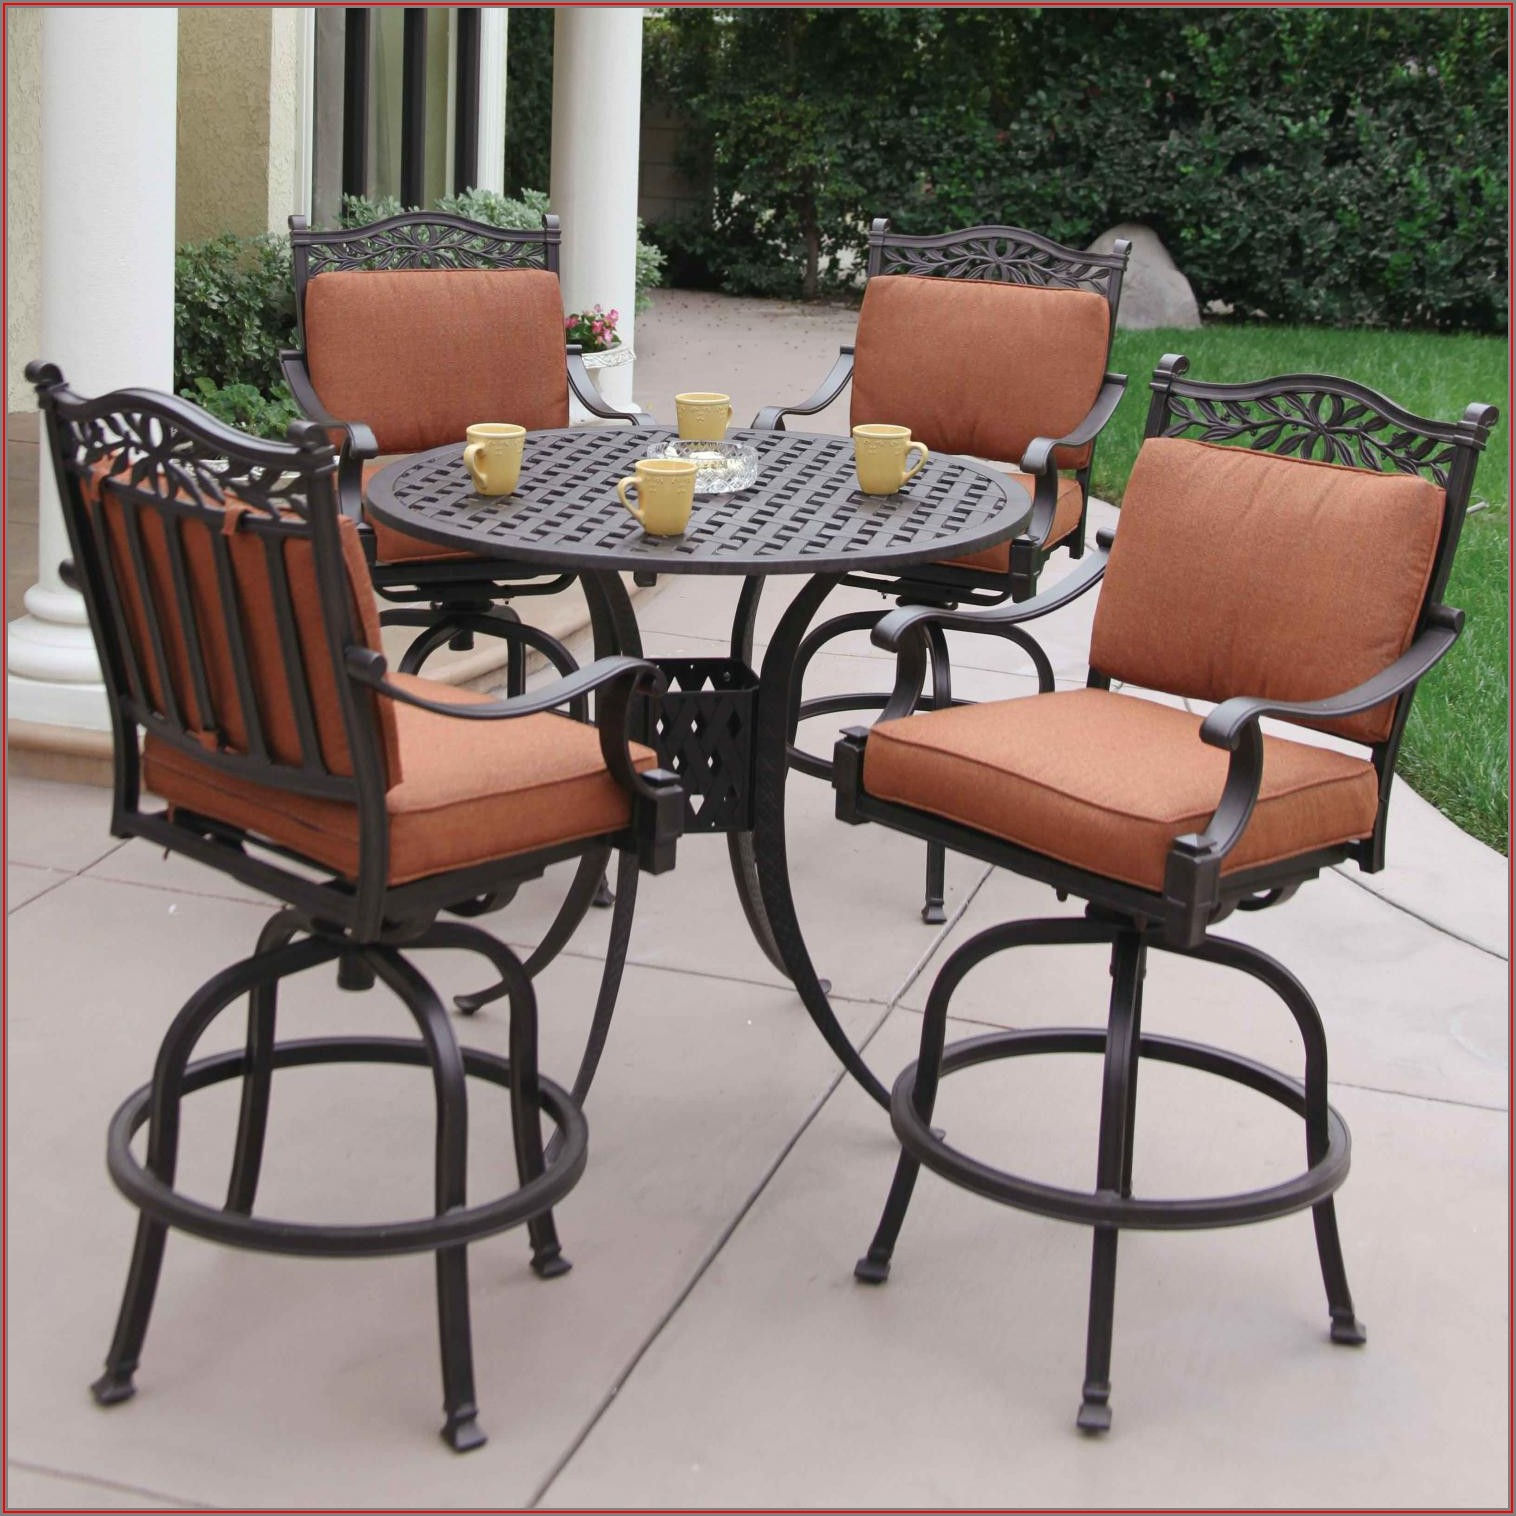 Darlee Aluminum Patio Furniture